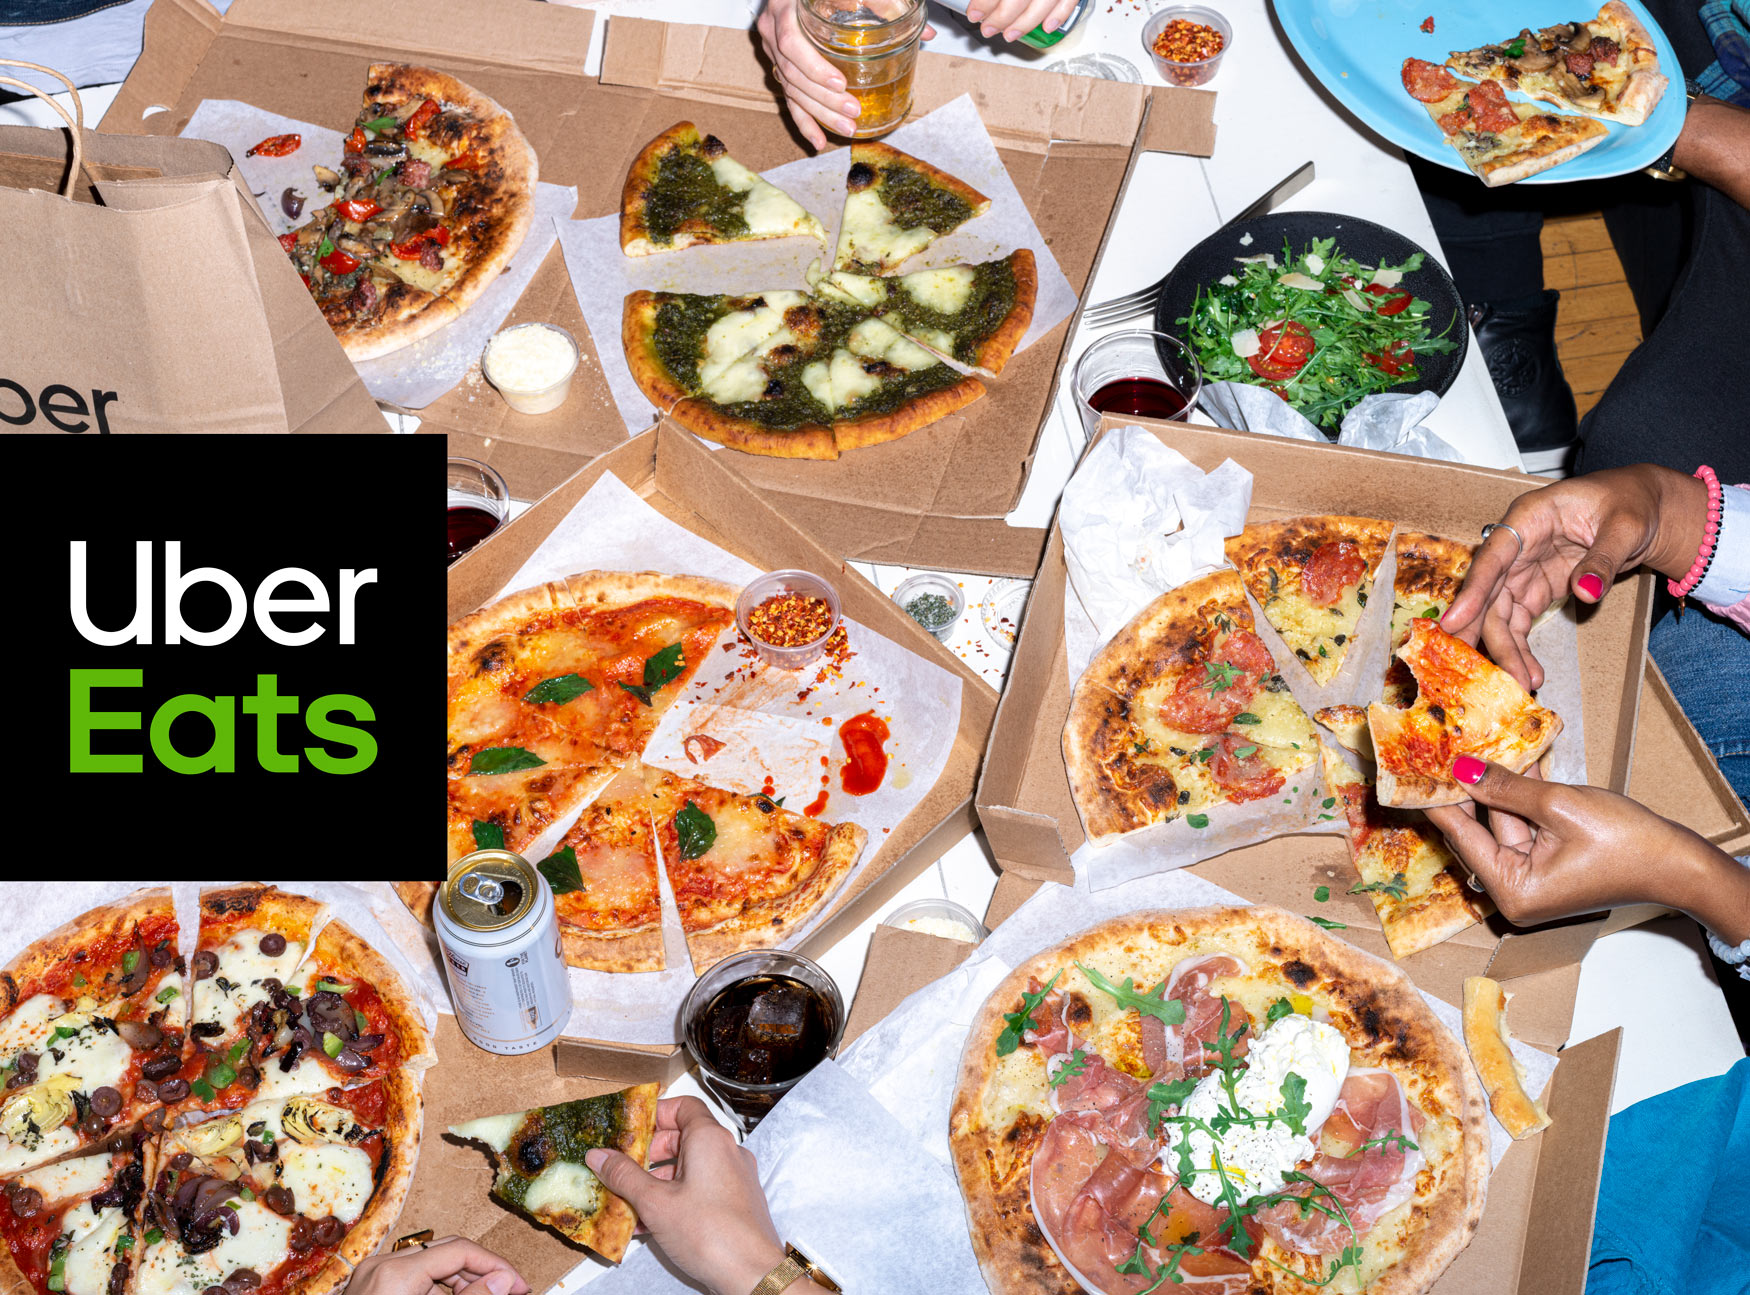 190216_JM_UBEREATS_02_PIZZA_PARTY_0165-ad-website